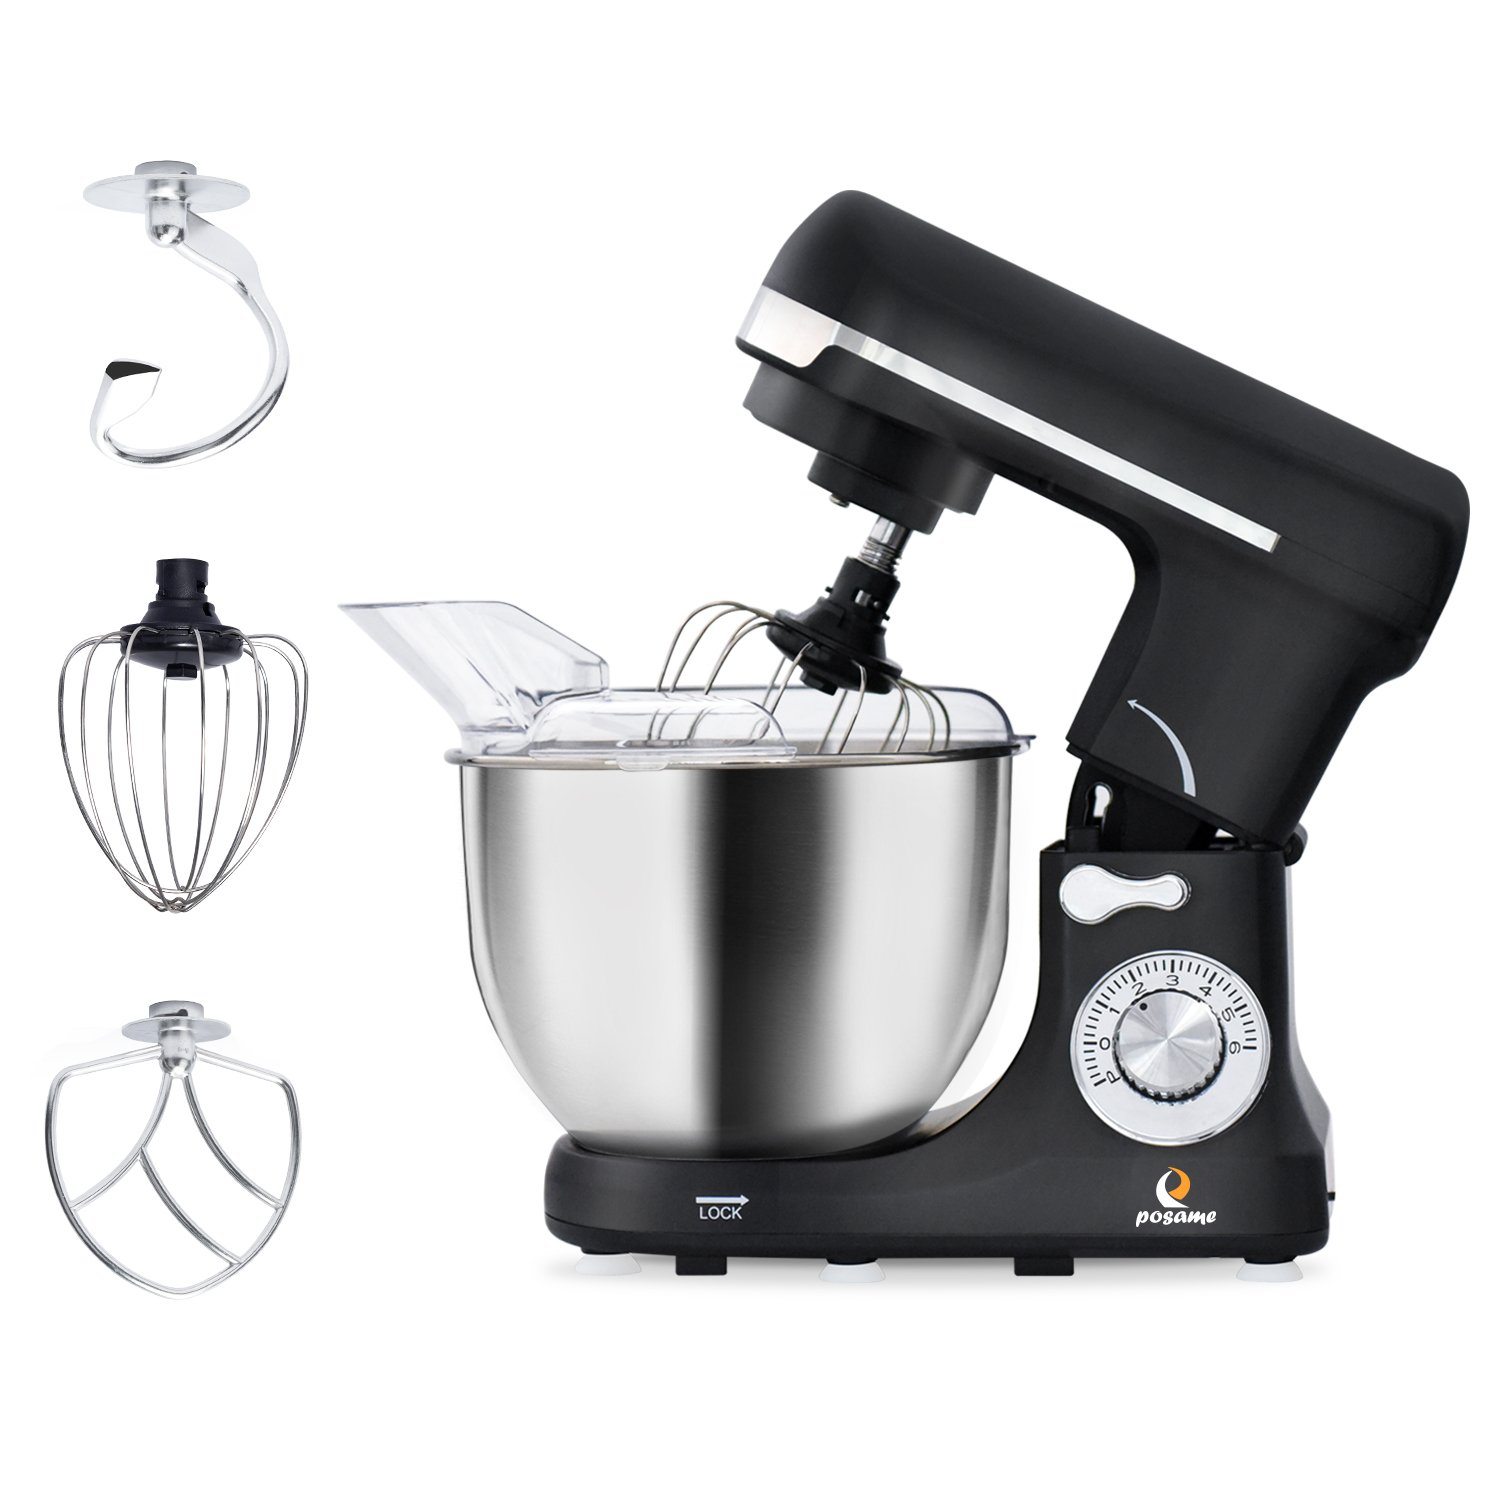 POSAME Stand Mixer 500W 6-Speed Professional Kithchen Mixer Tilt-Head Electric Food Machine with 5-Qt. Bowl,Dough Hook, Whisk, Beaters (Black)